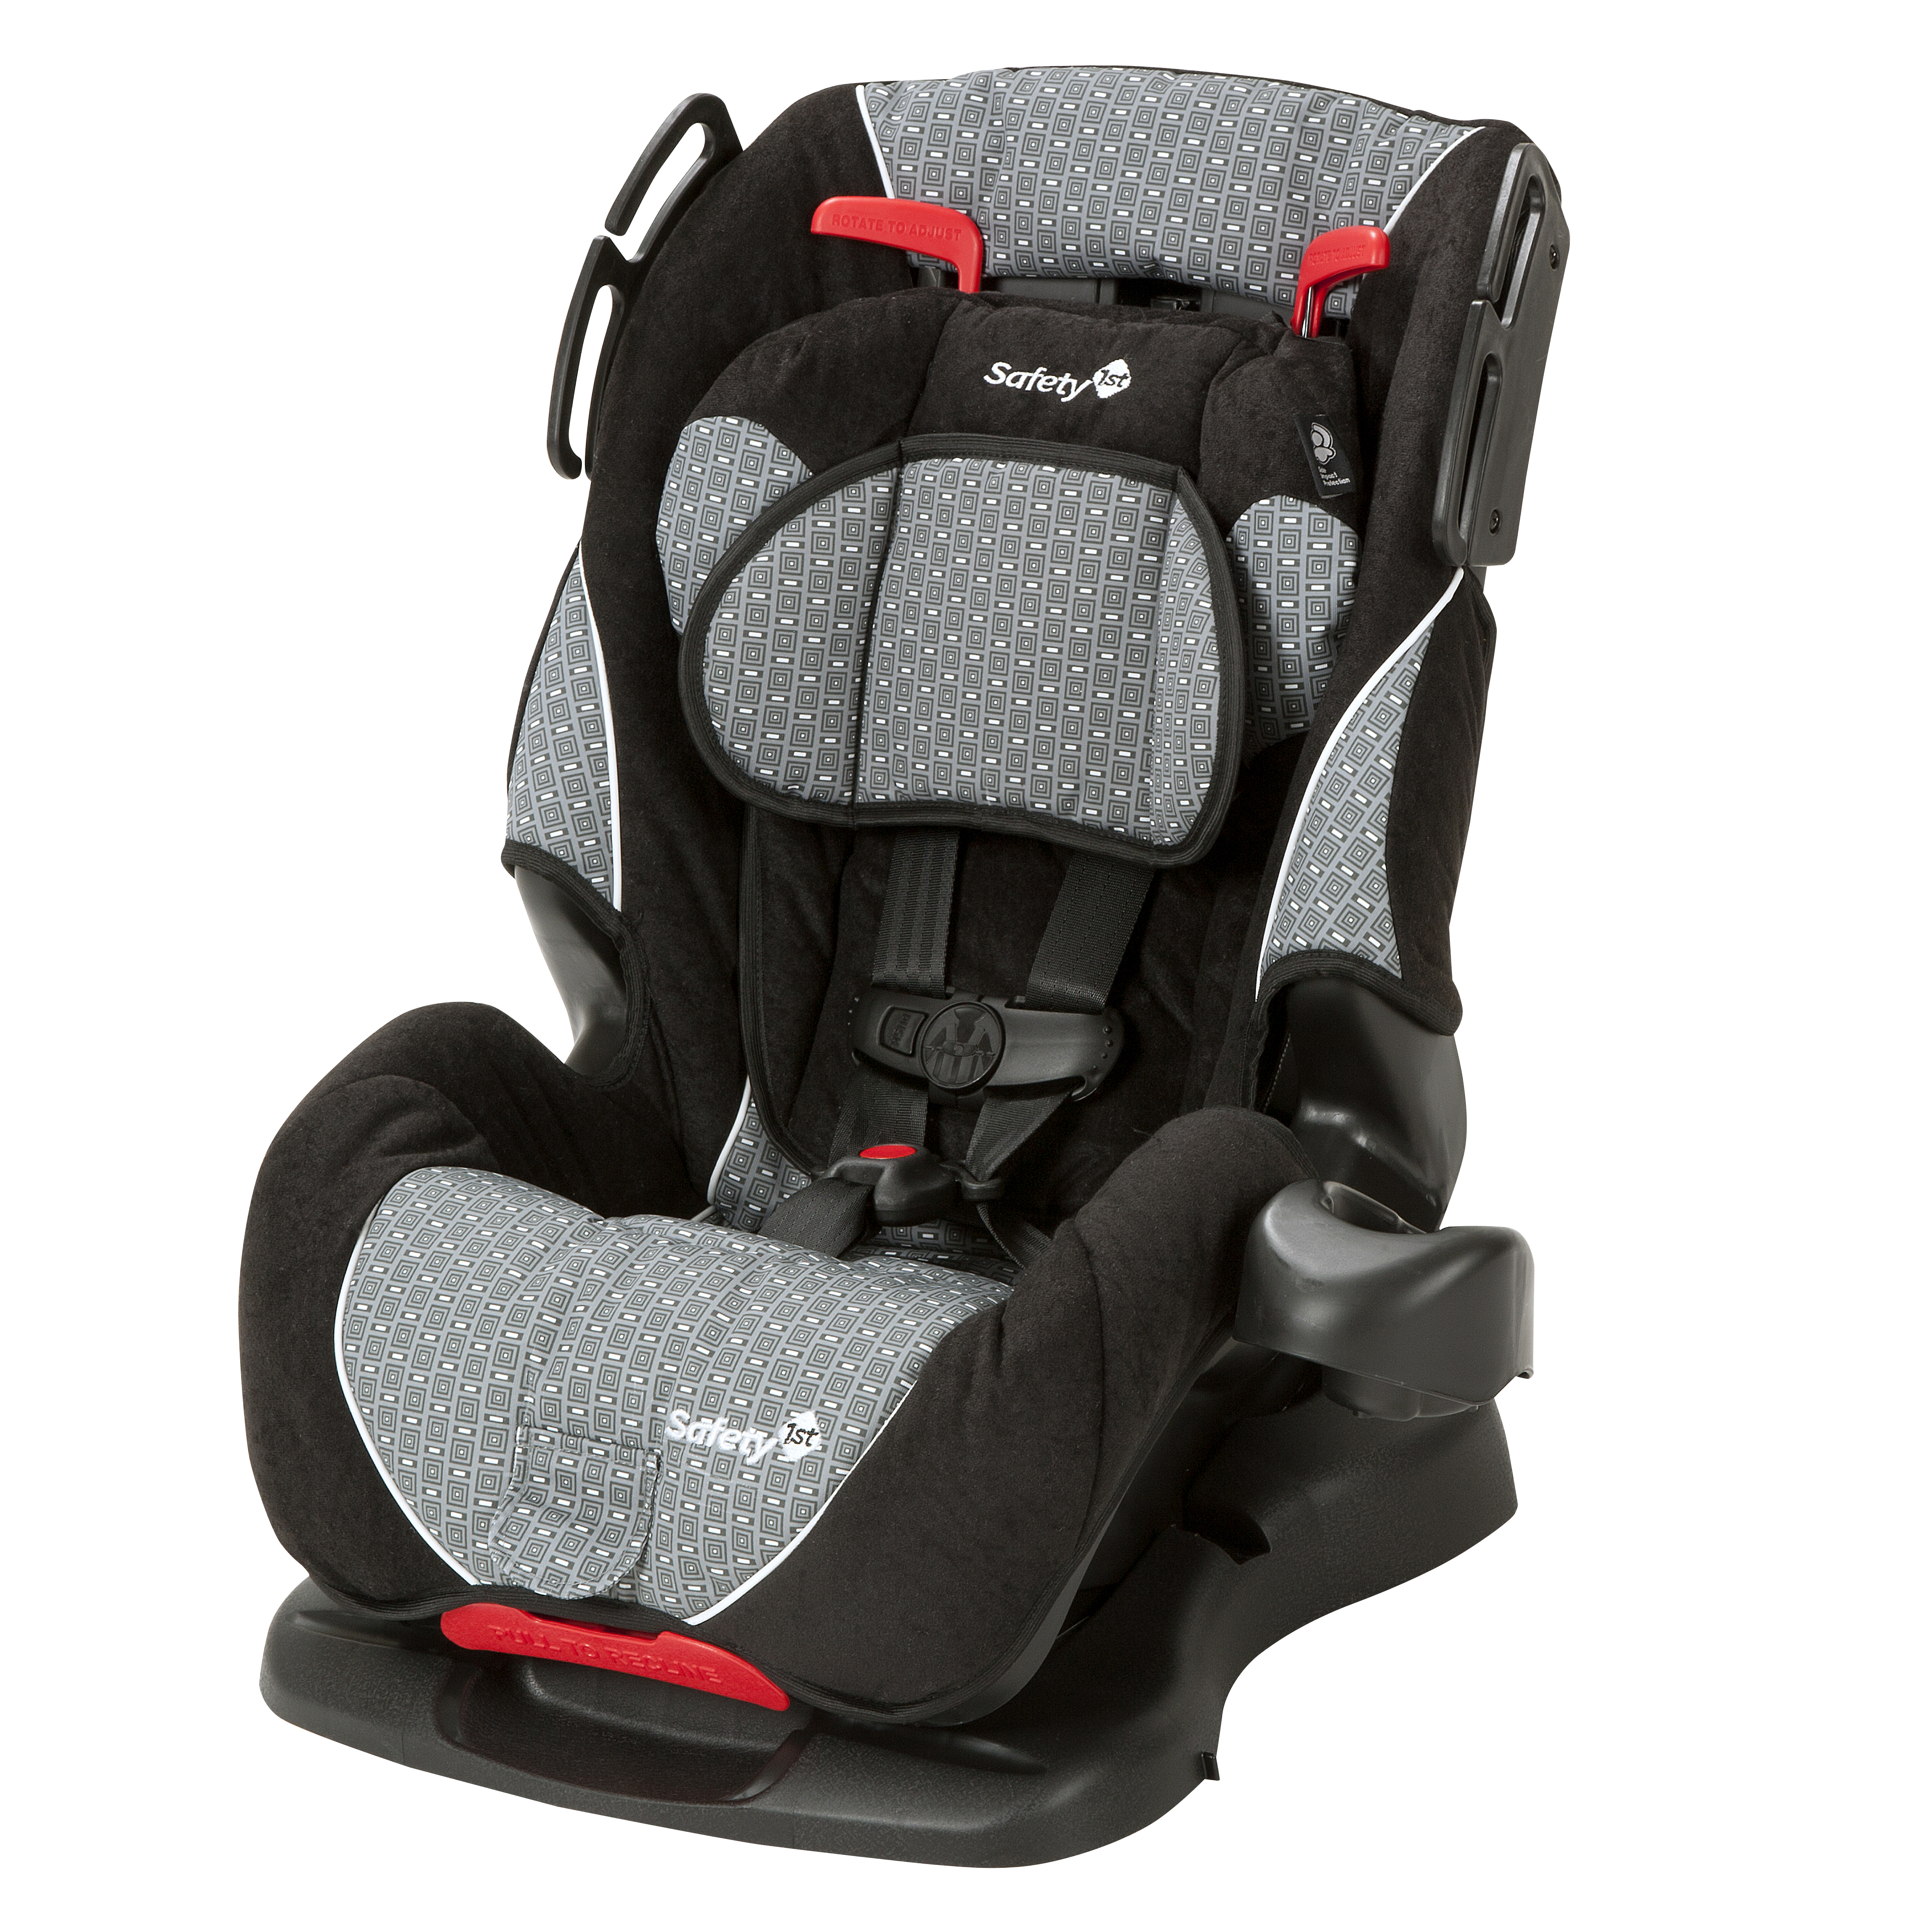 Safety 1st All in One Sport Convertible Car Seat 884392584474 | eBay